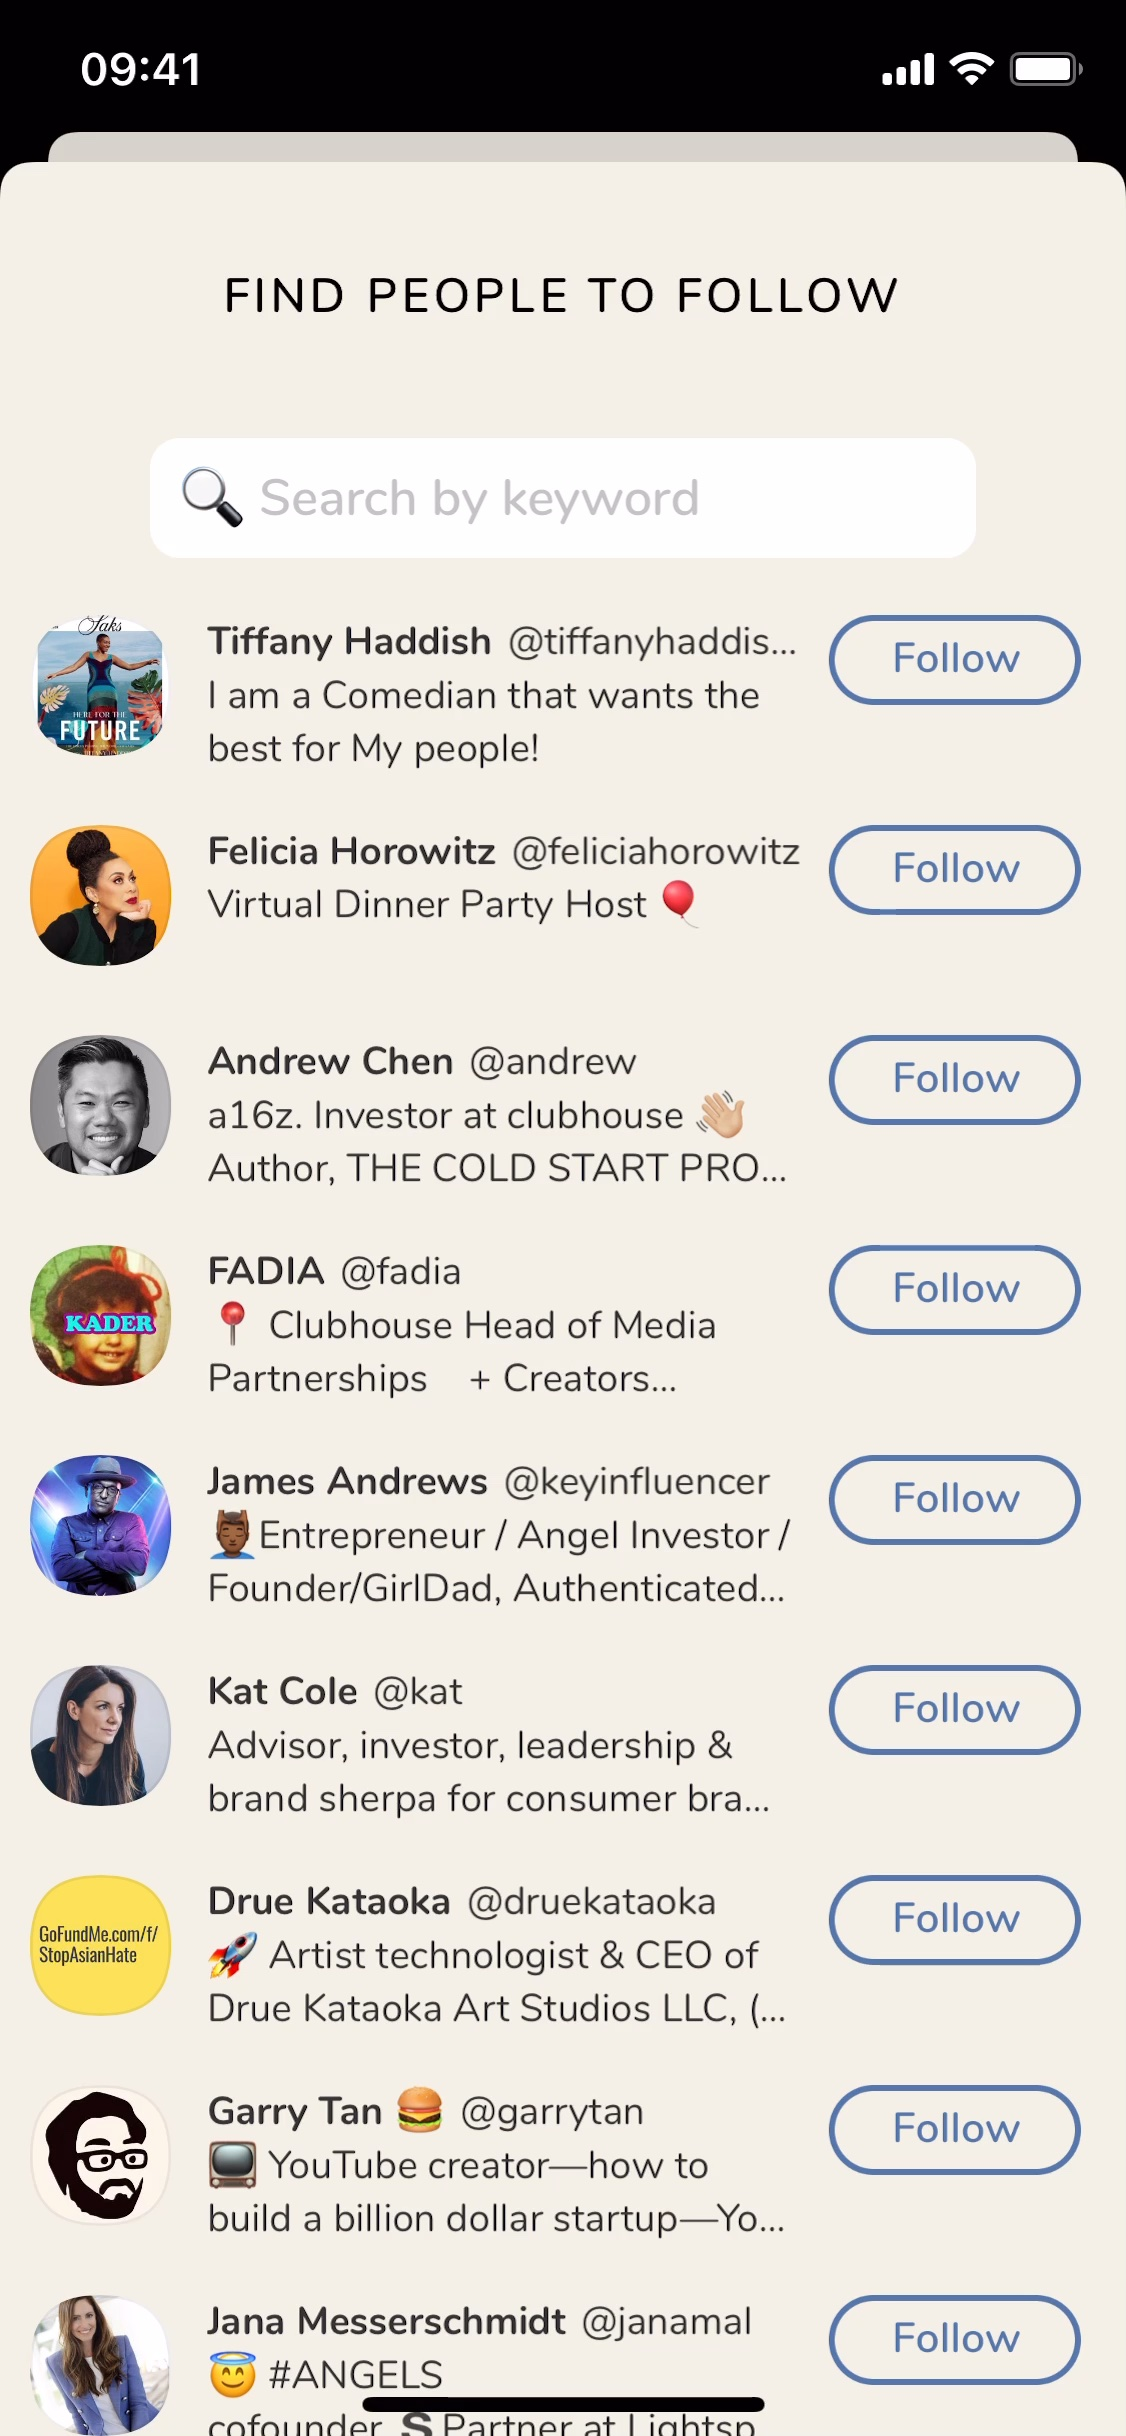 Find people to follow screenshot